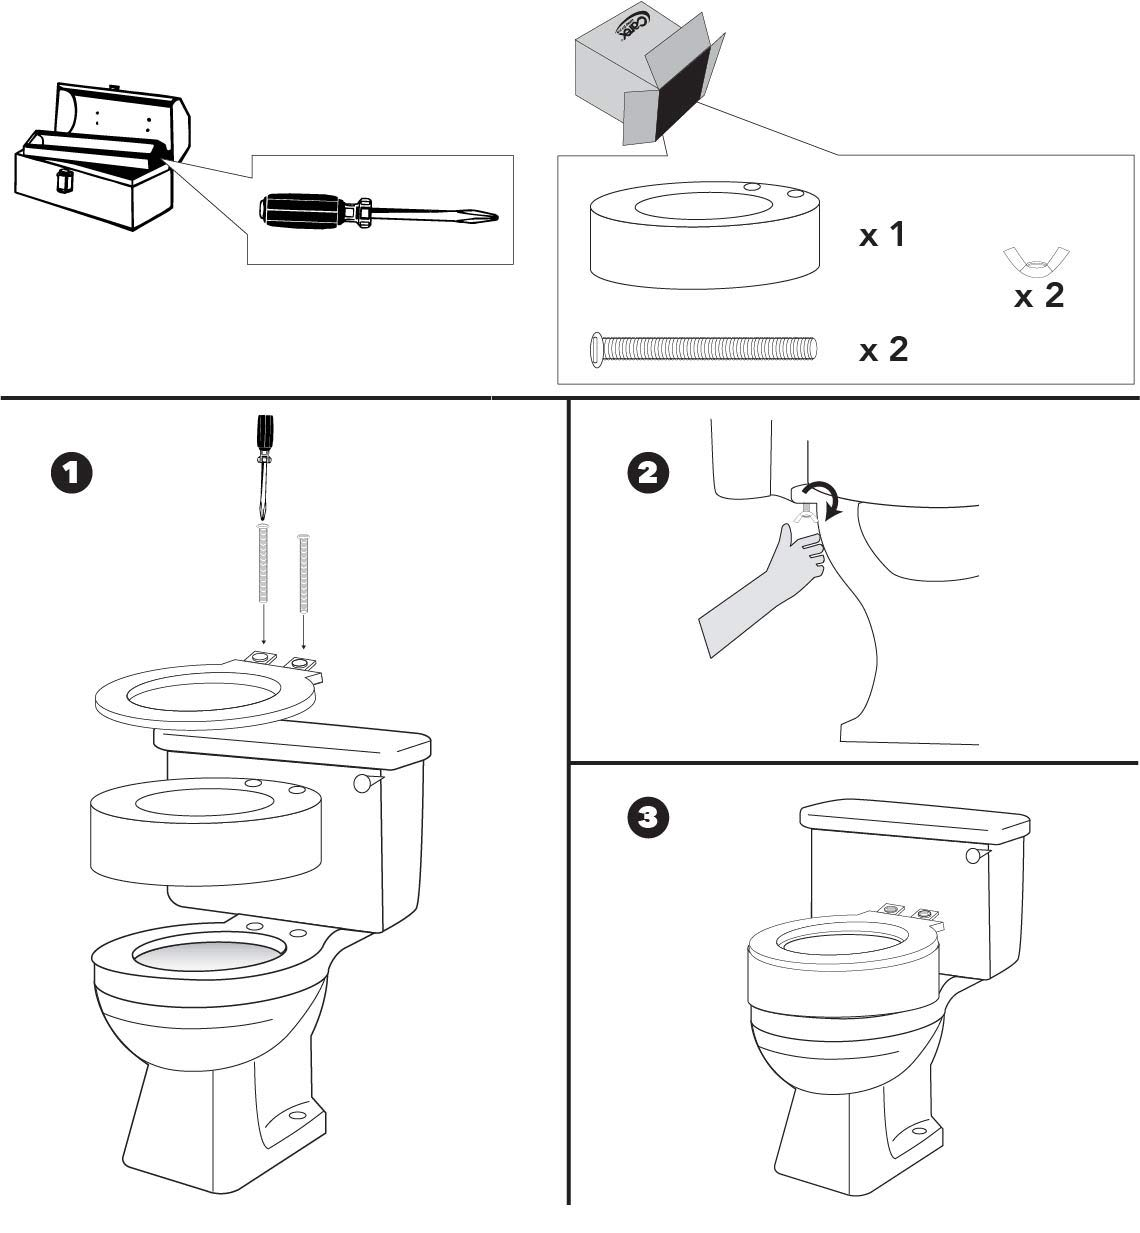 Commodes Solver Carex Raised Toilet Seat Elevator For Elongated Seats Adds